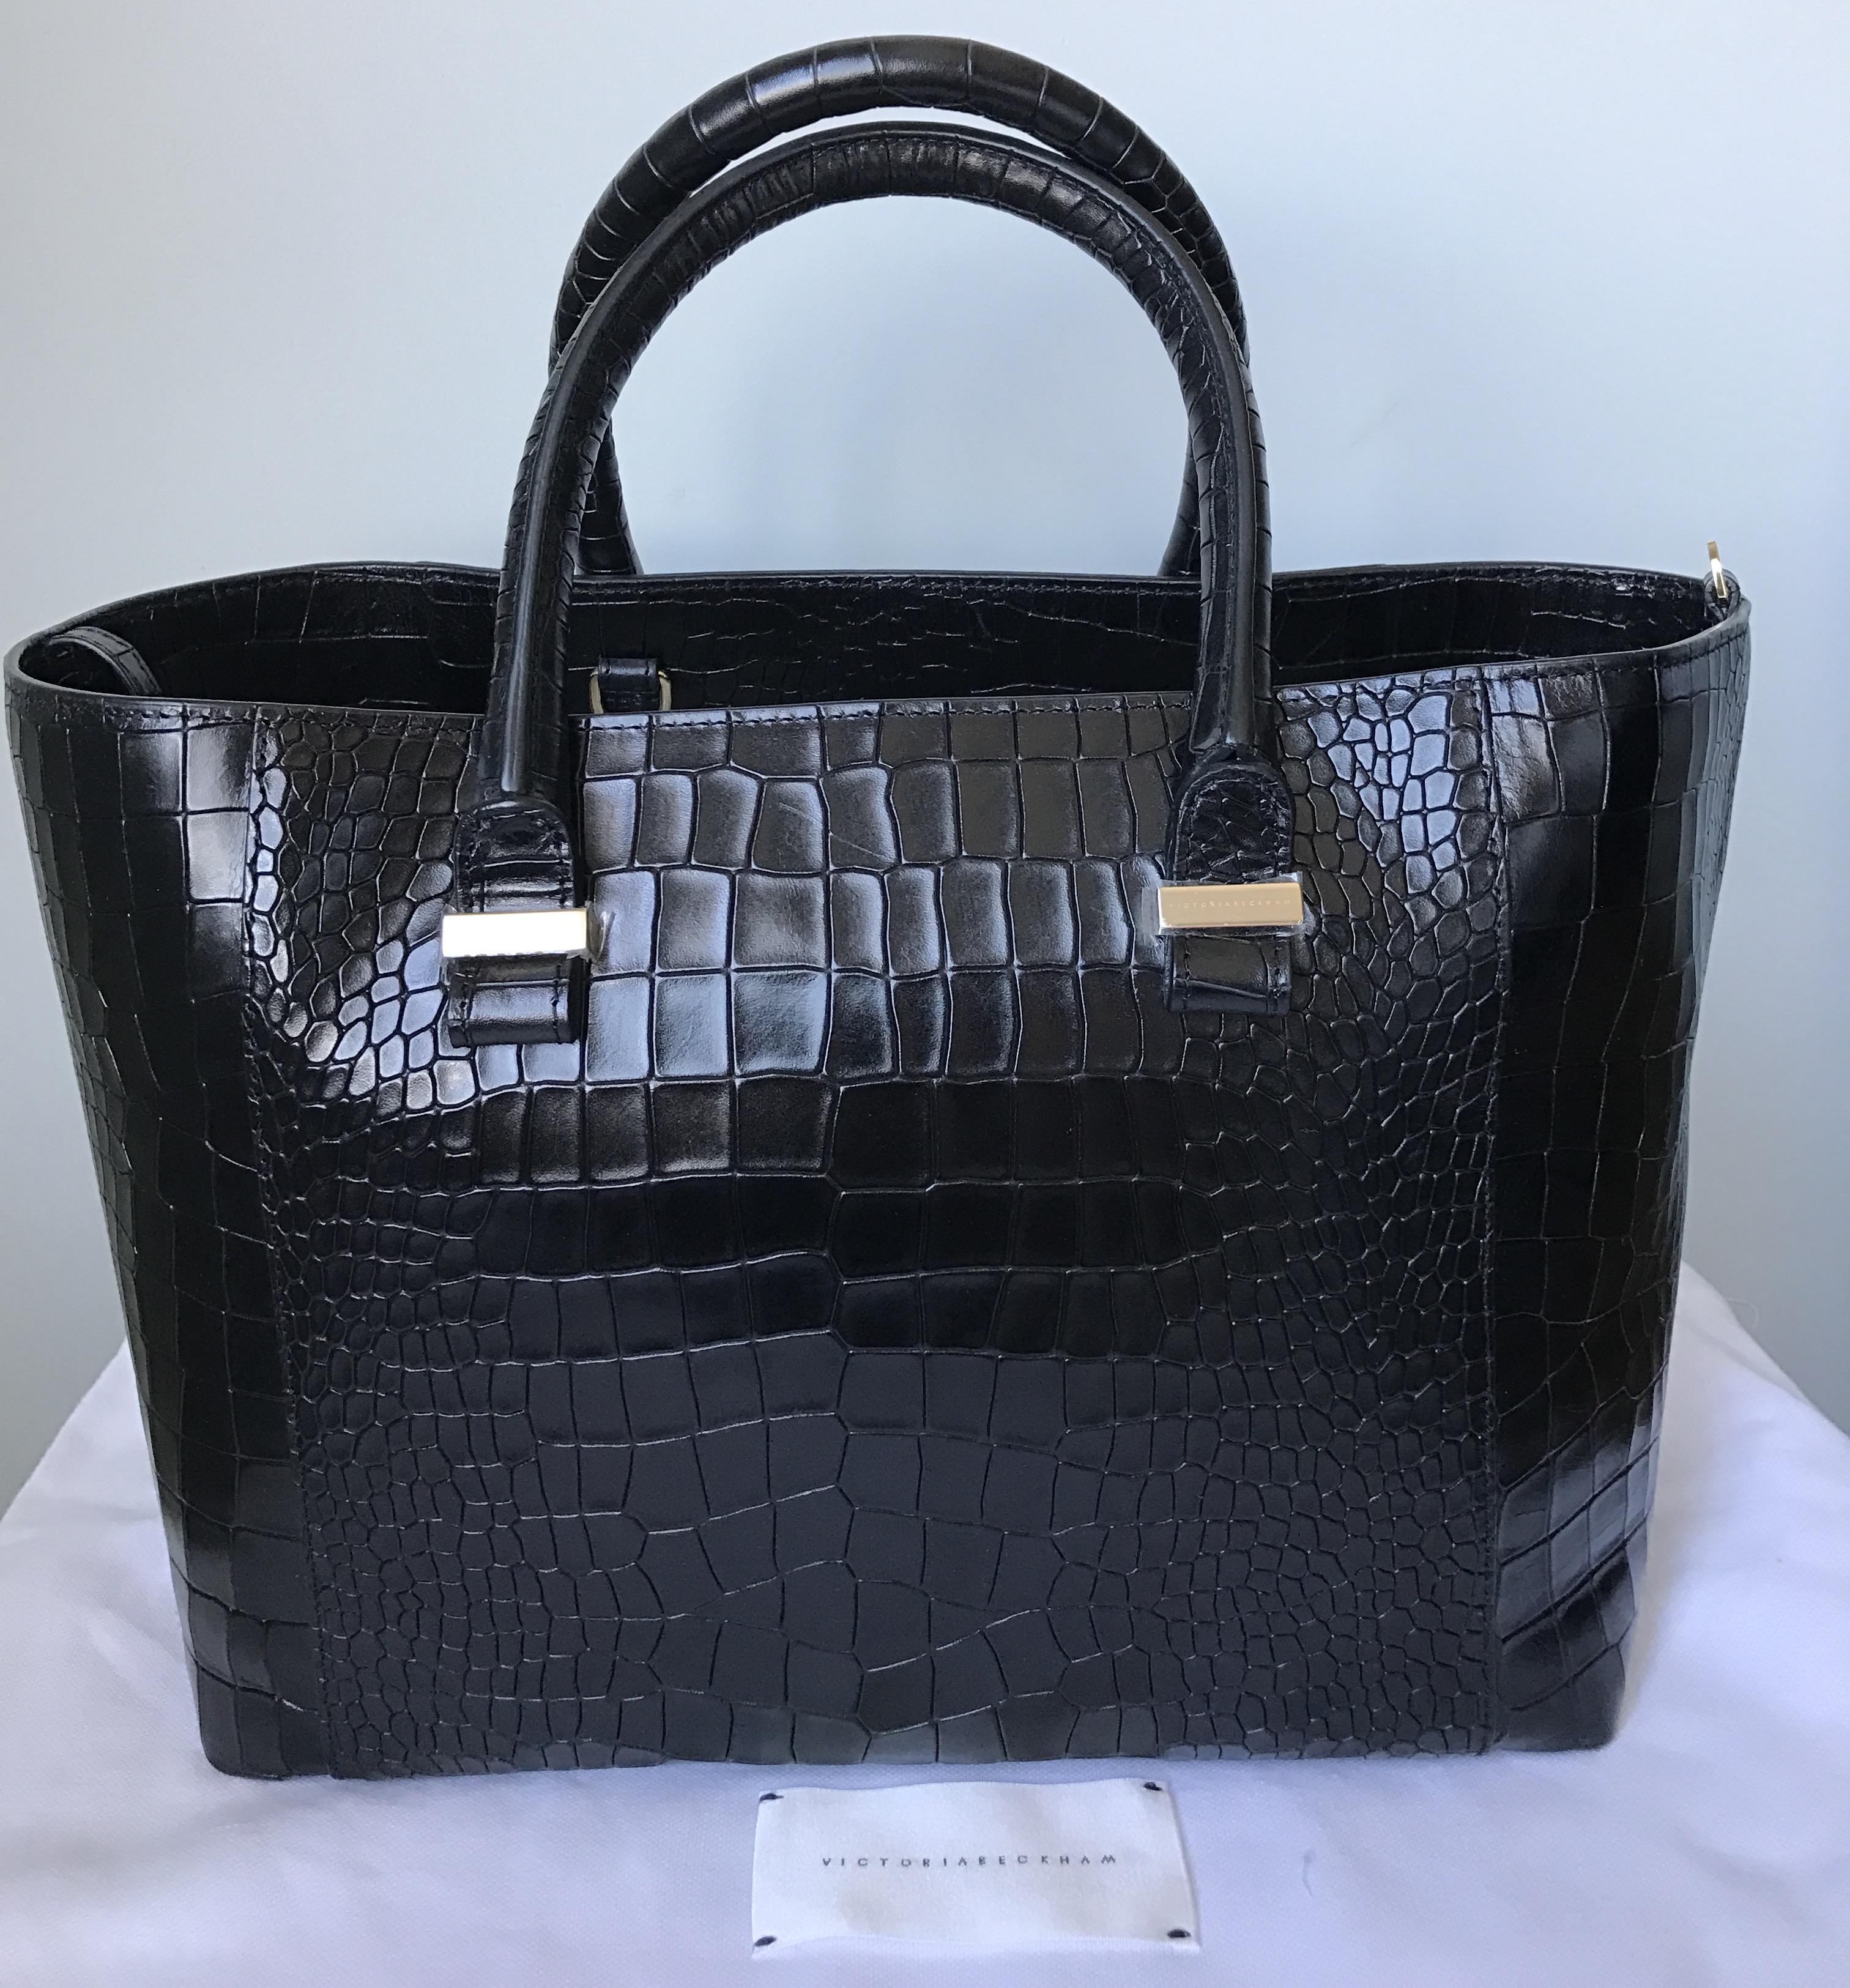 Victoria Beckham Black Convertible Leather Quincy Embossed ...